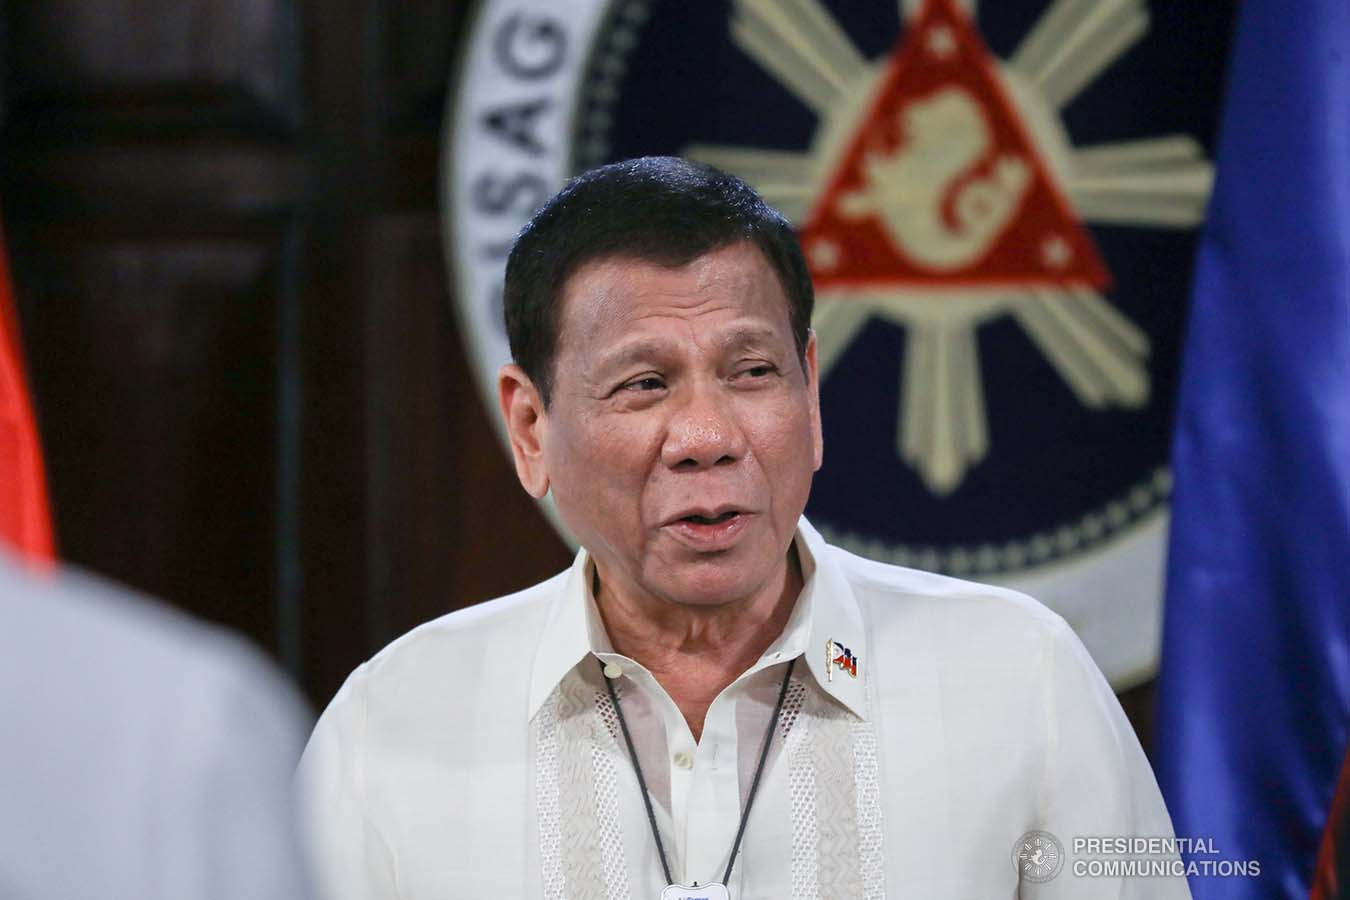 President Rodrigo Roa Duterte talks to some members of the Cabinet after joining other leaders from the Association of Southeast Asian Nations (ASEAN) member countries during the special ASEAN Summit on Covid-19 video conference at the Malago Clubhouse in Malacañang on April 14, 2020. TOTO LOZANO/PRESIDENTIAL PHOTOS